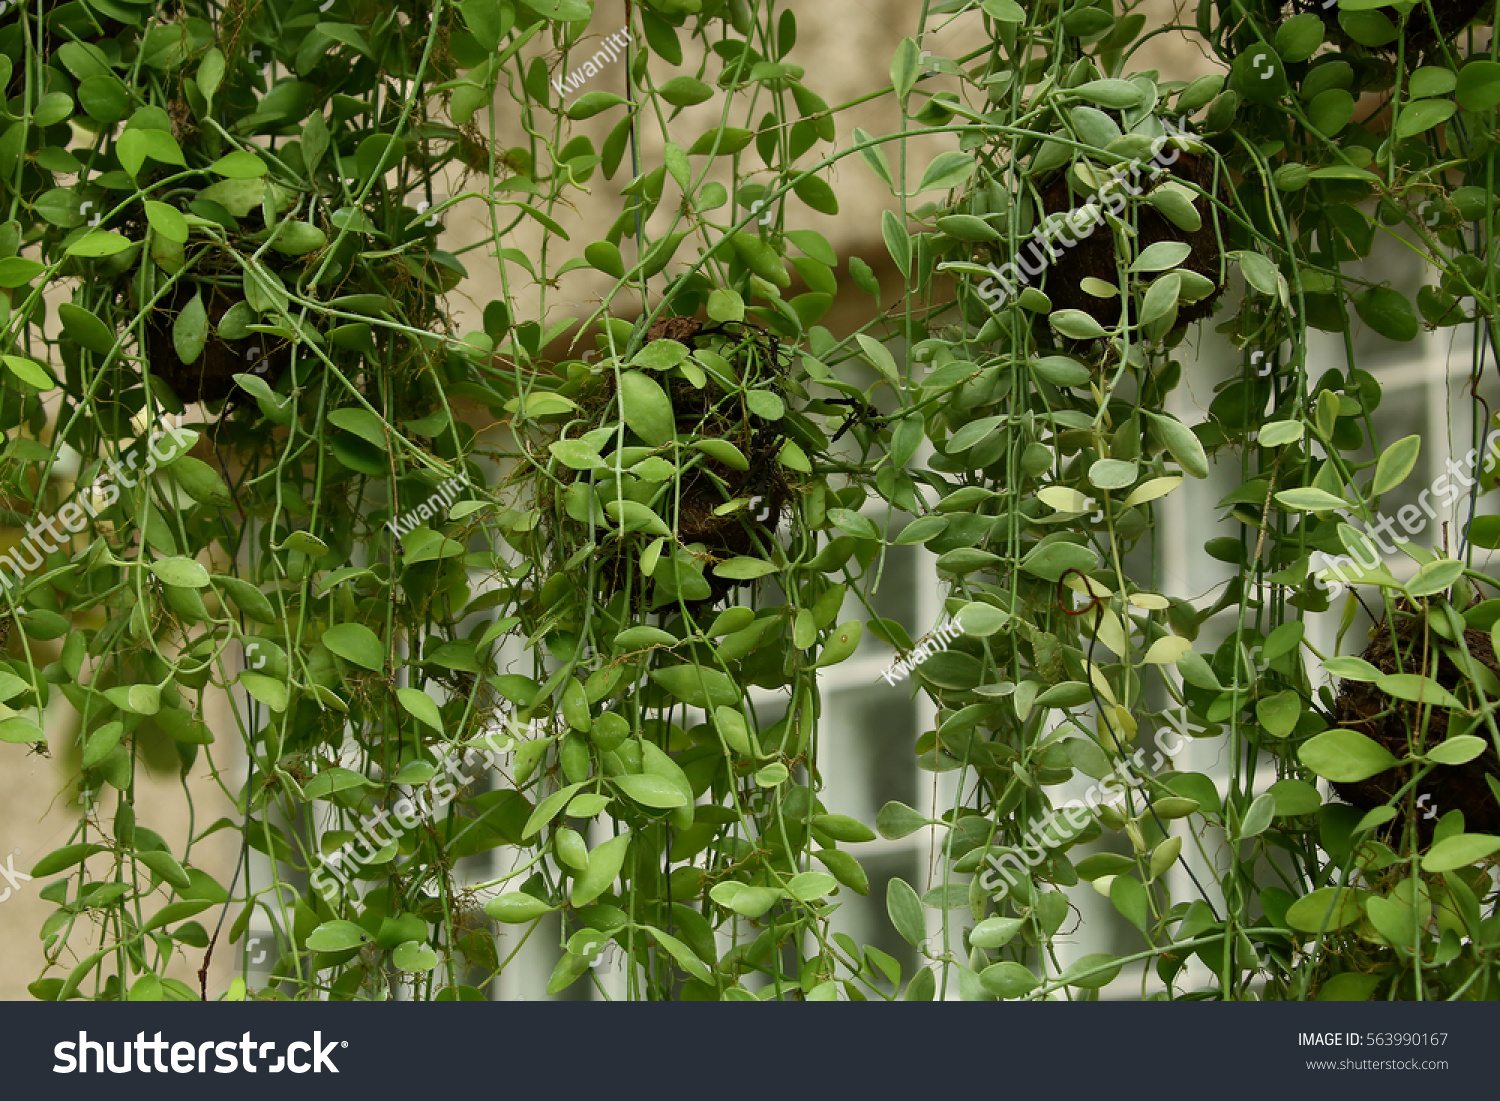 Green creeper plant background #563990167